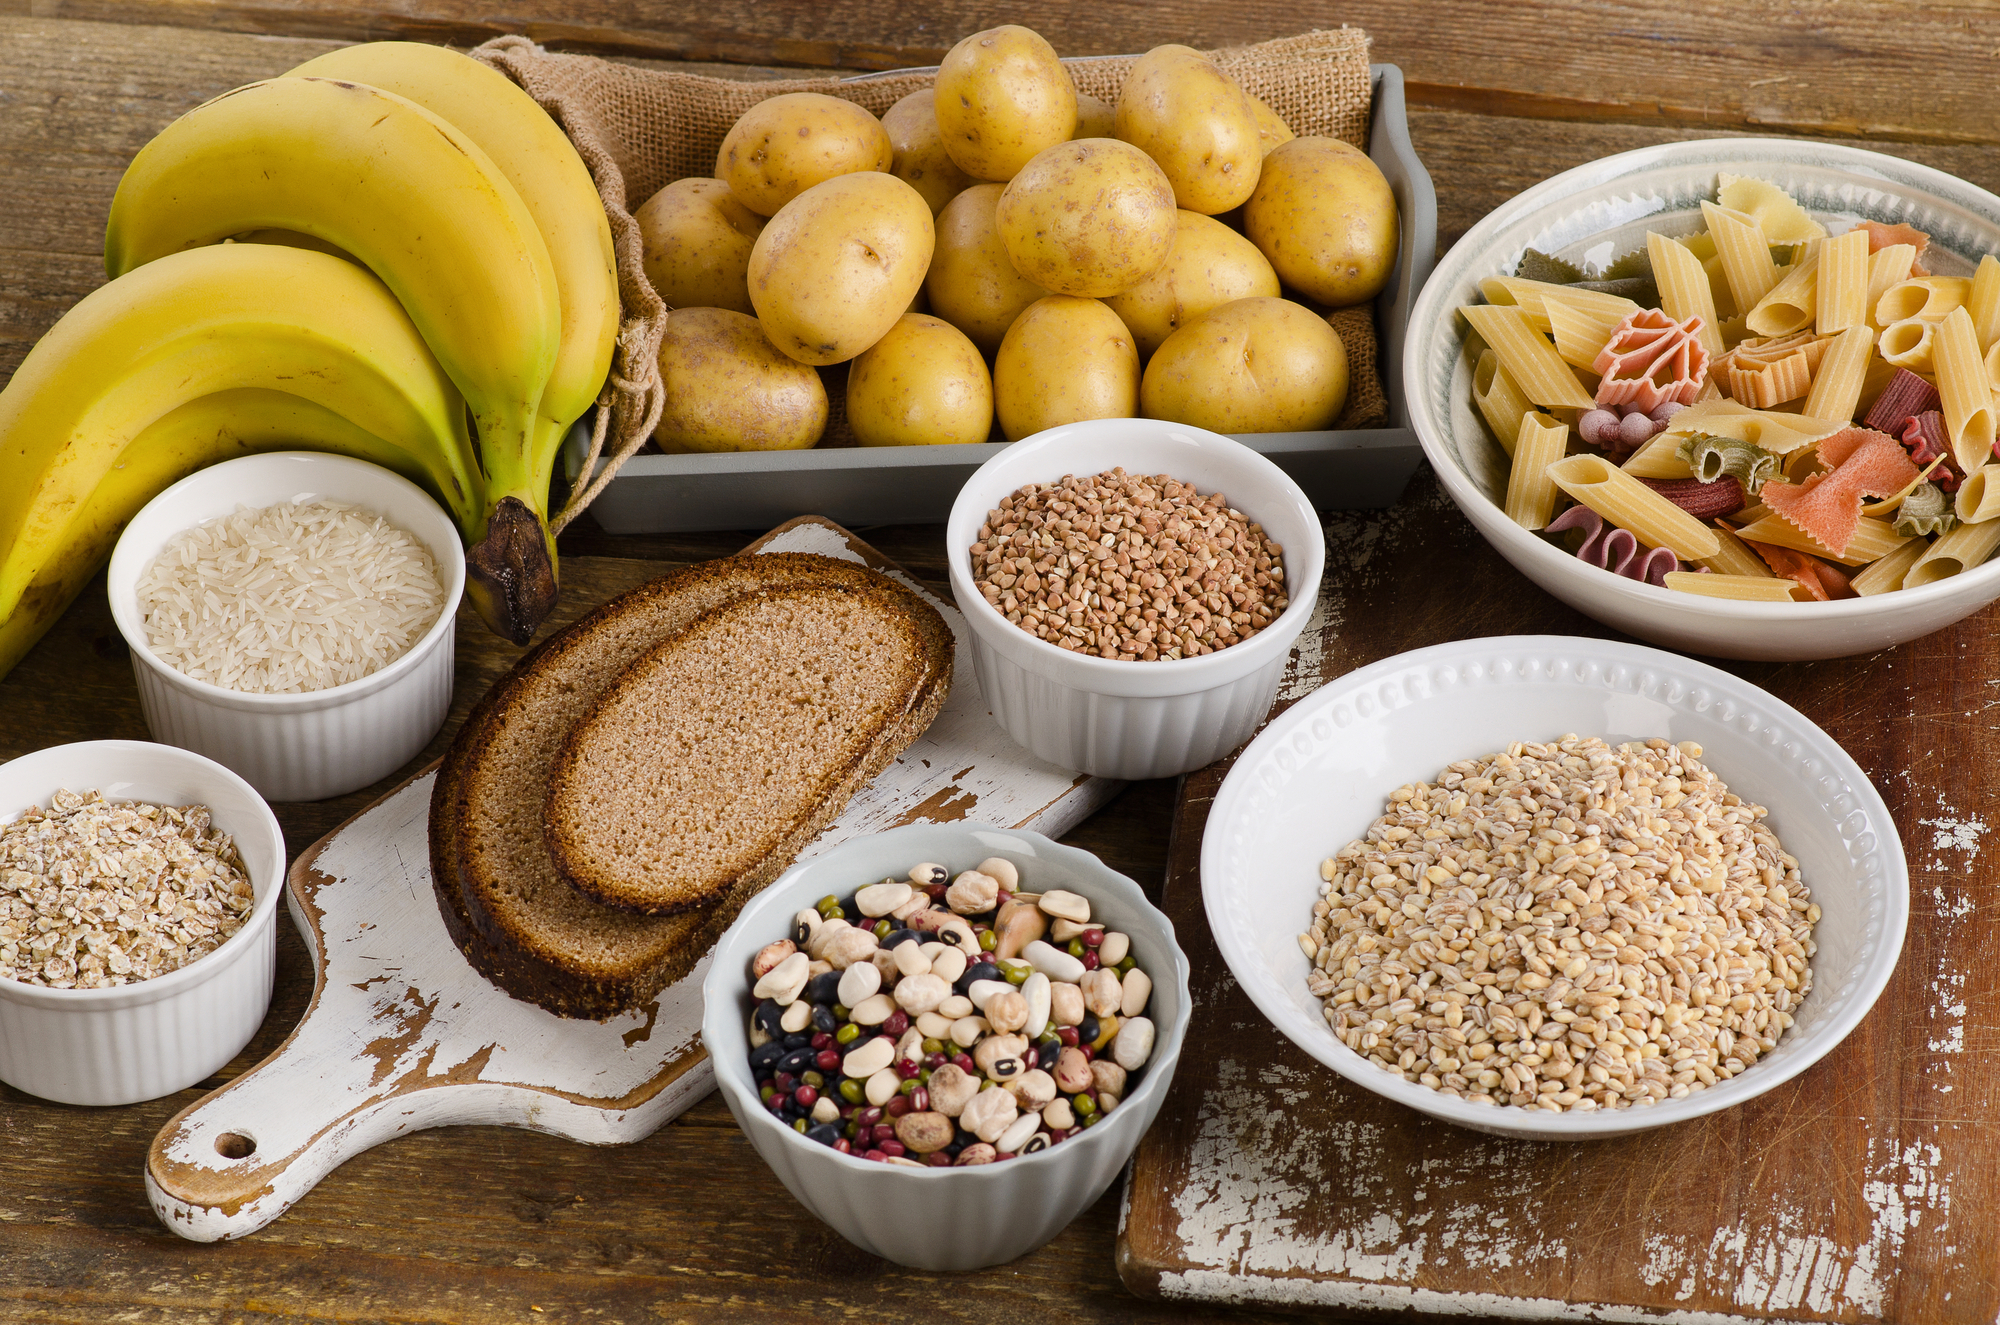 Foods high in carbohydrate on a wooden background.